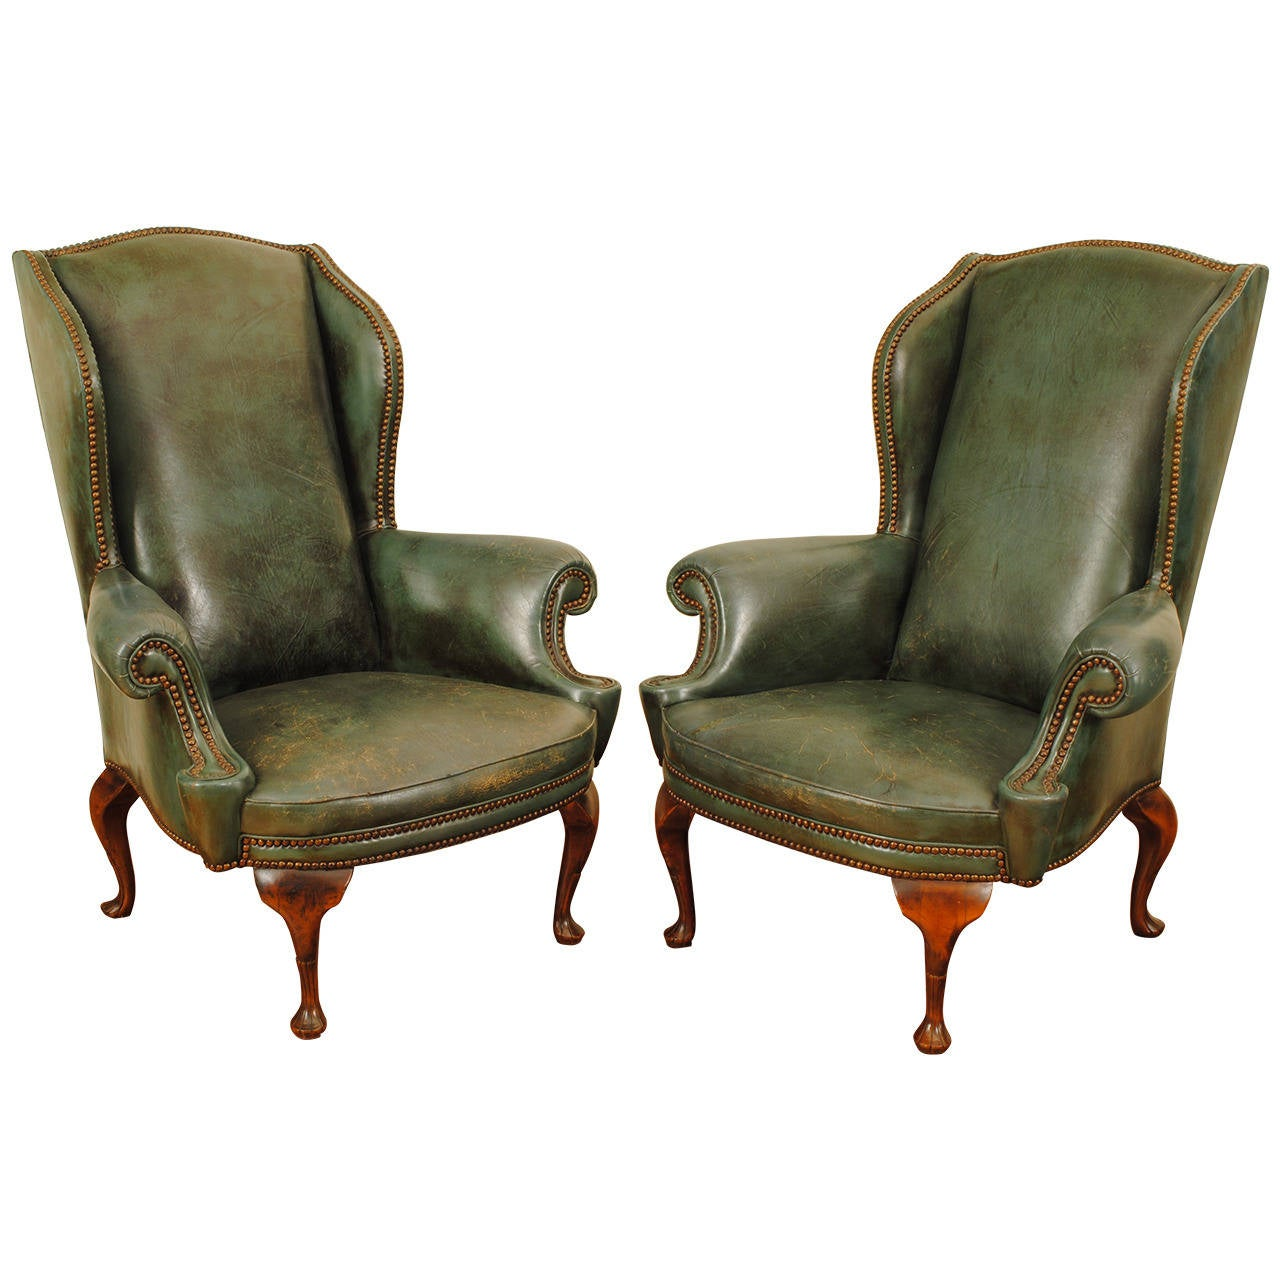 Upholstered Chairs With Nailheads Pair Of Italian Queen Anne Style Walnut And Leather